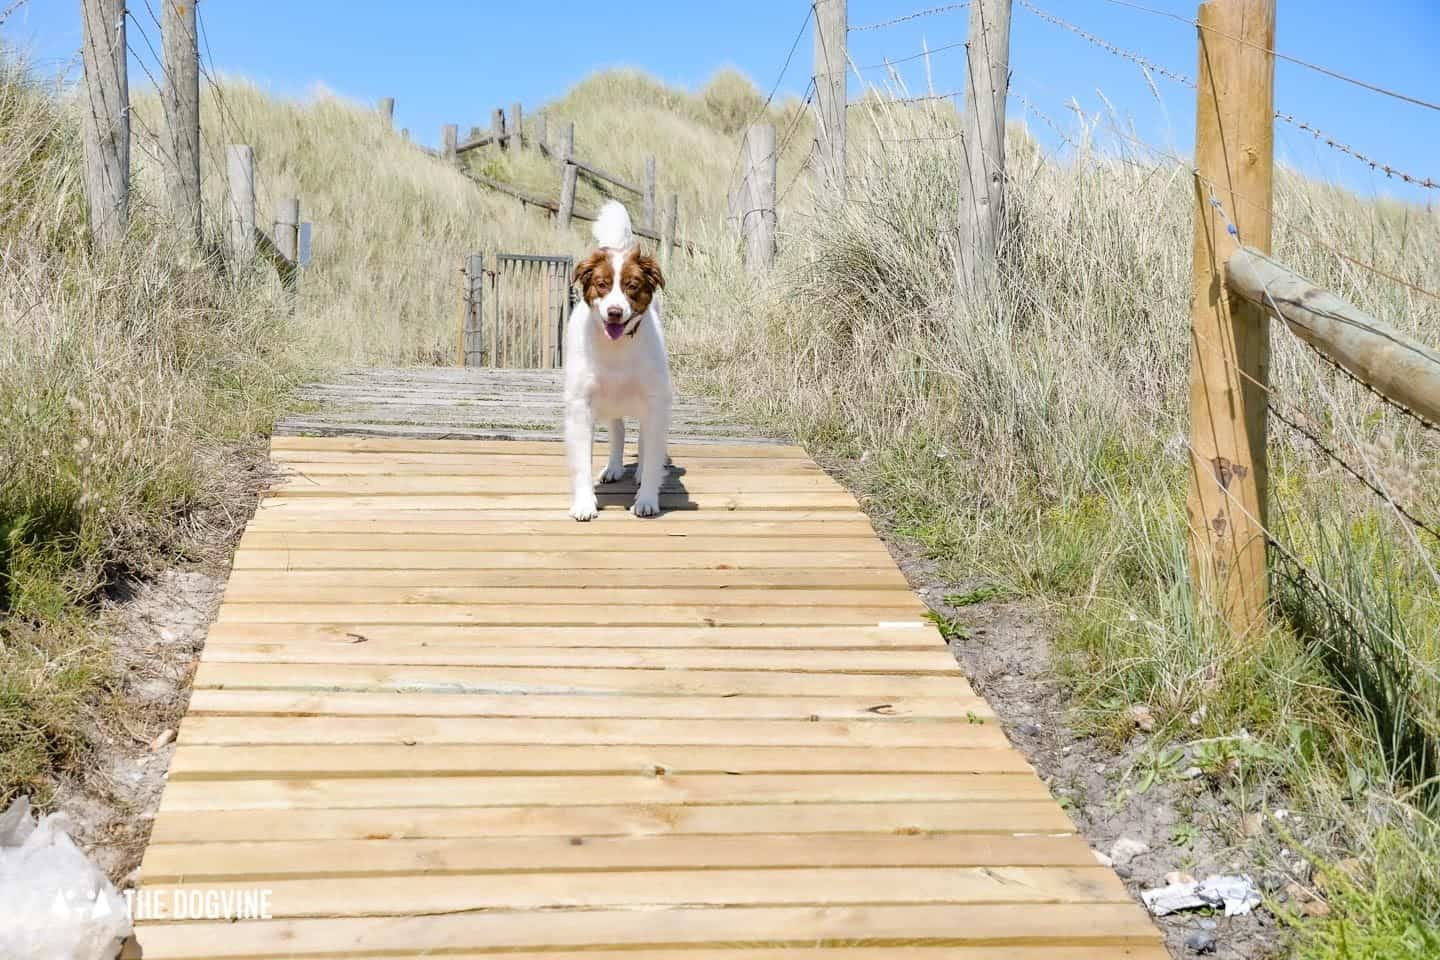 The Best Dog-Friendly Beaches in West Sussex -Littlehampton West Beach - Dog on the wooden walkway